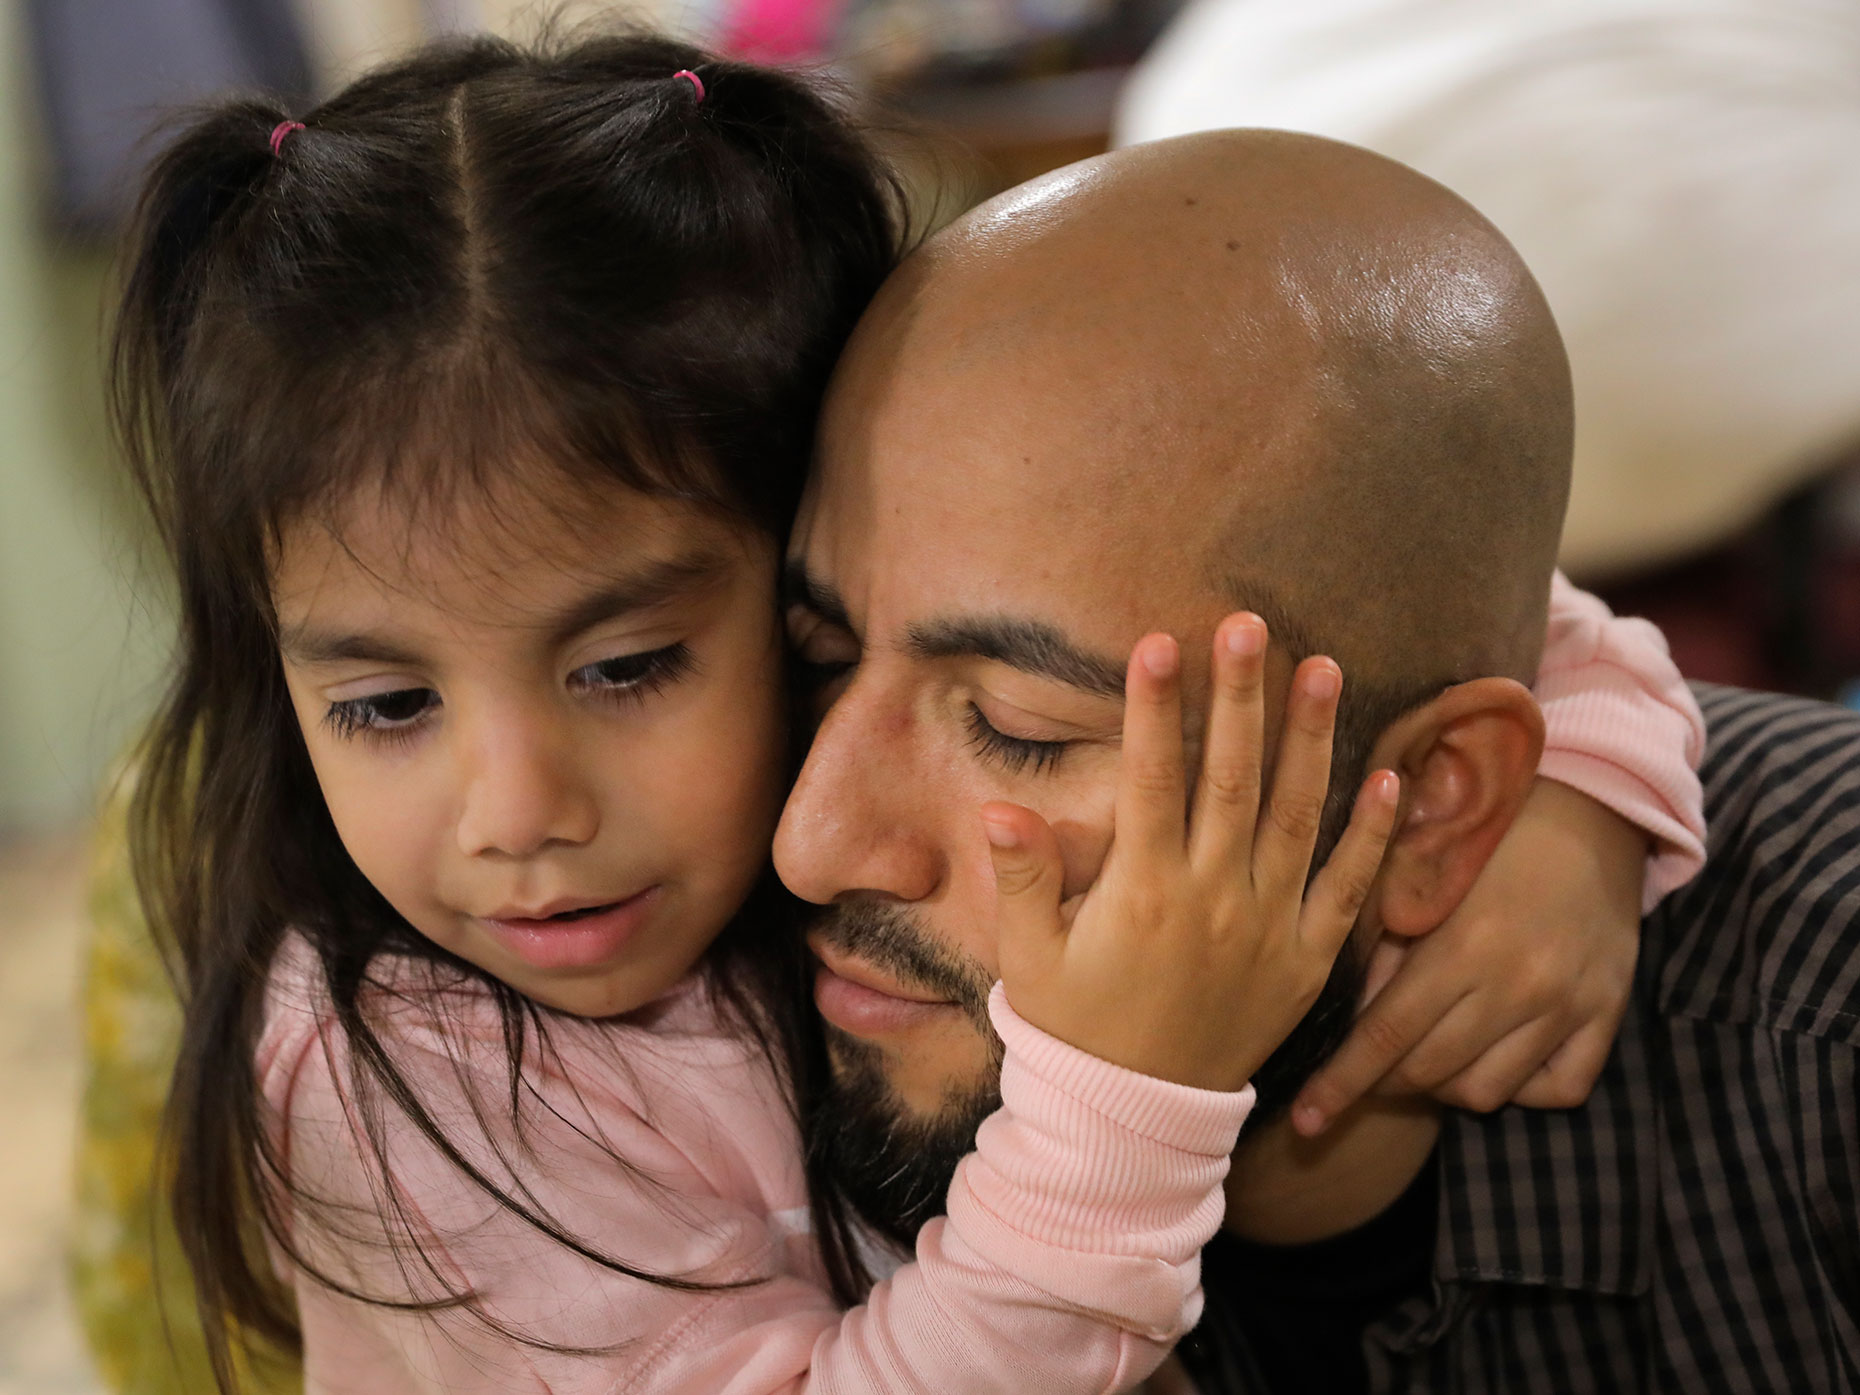 With no end in sight, Maplewood church vows to keep Honduran man in sanctuary